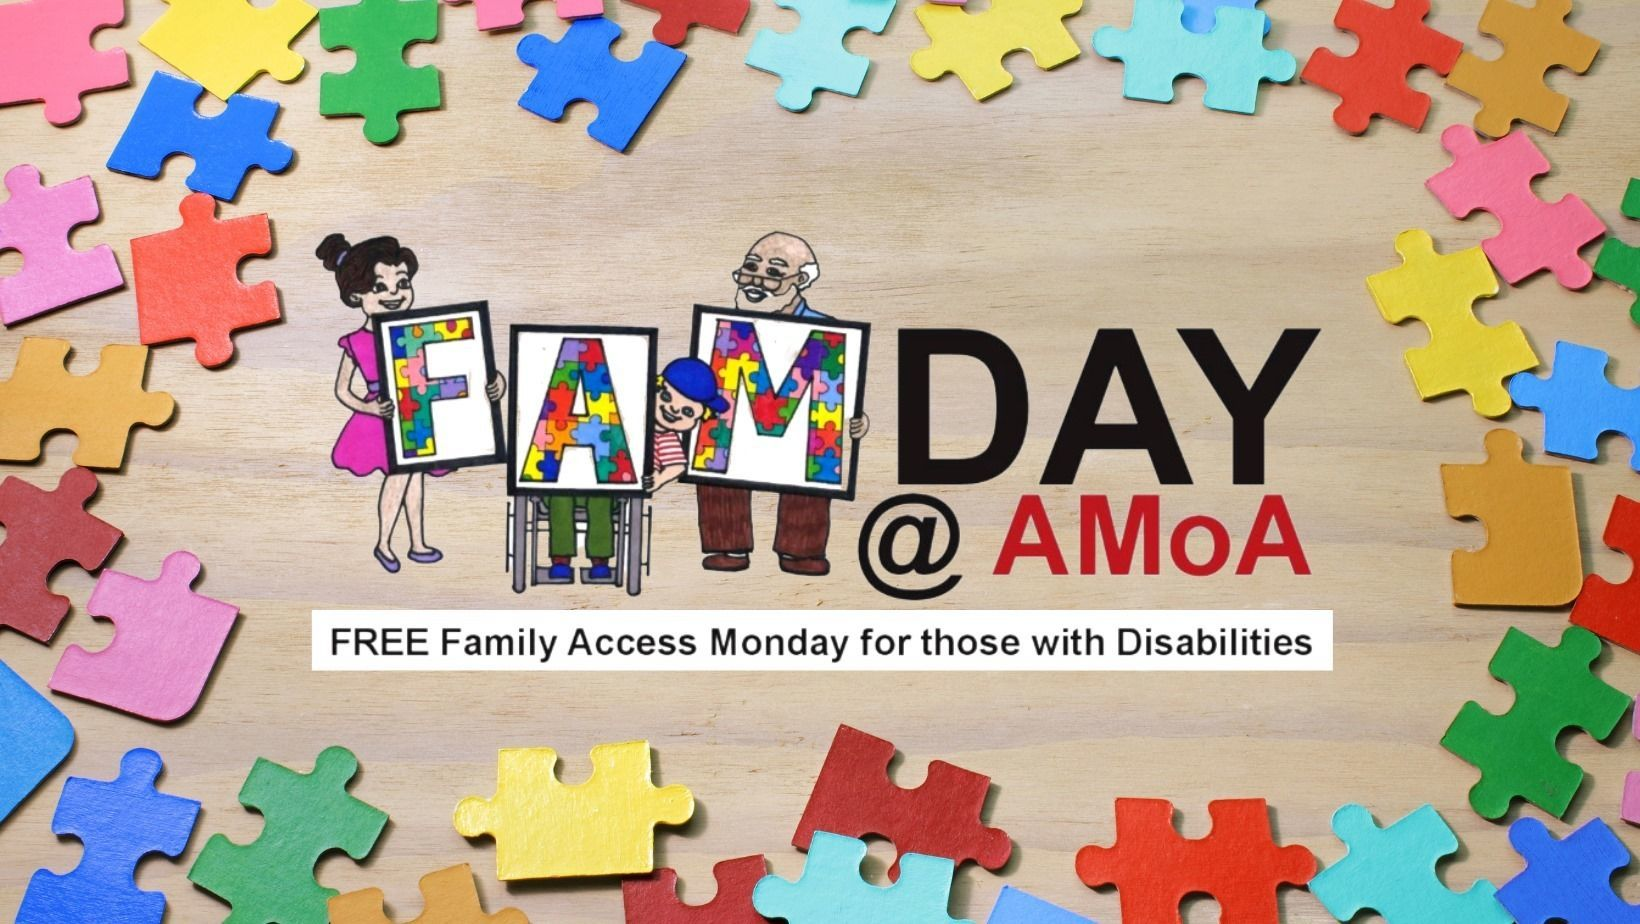 FREE Family Access Monday for those with Disabilities!